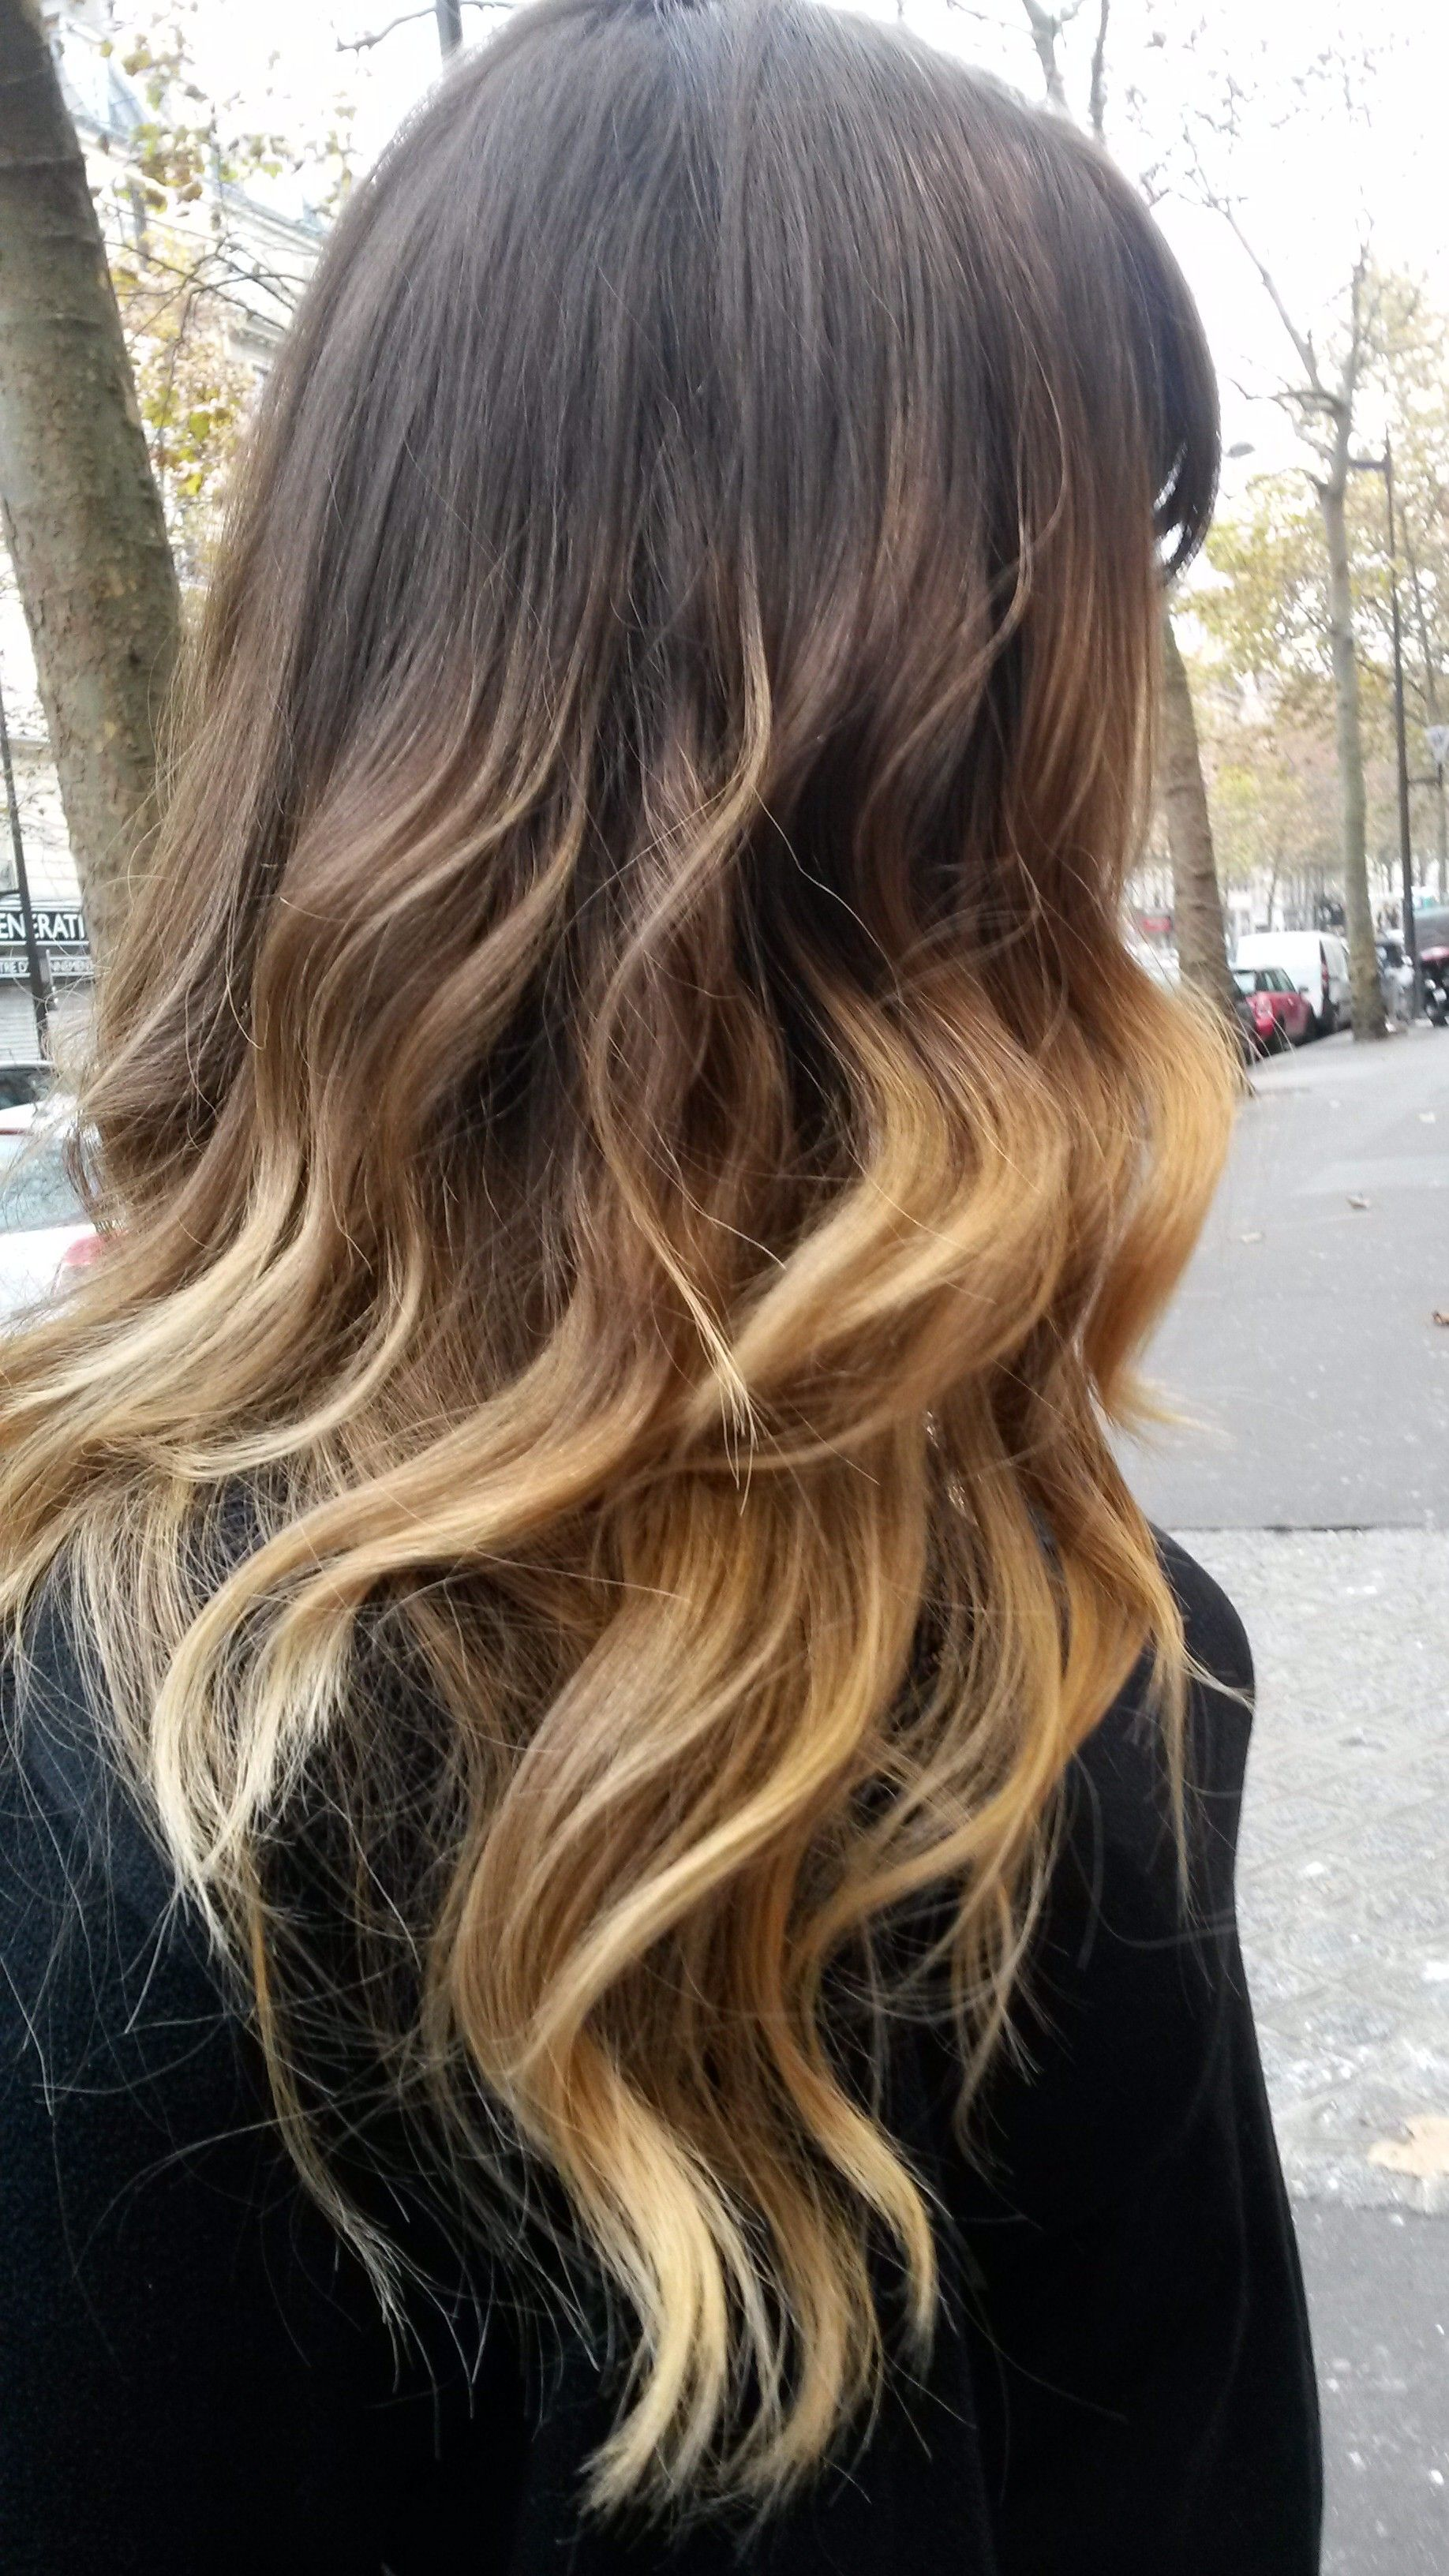 Favori dégradé brun blond - Recherche Google | Hair, makeup and nails  JQ26